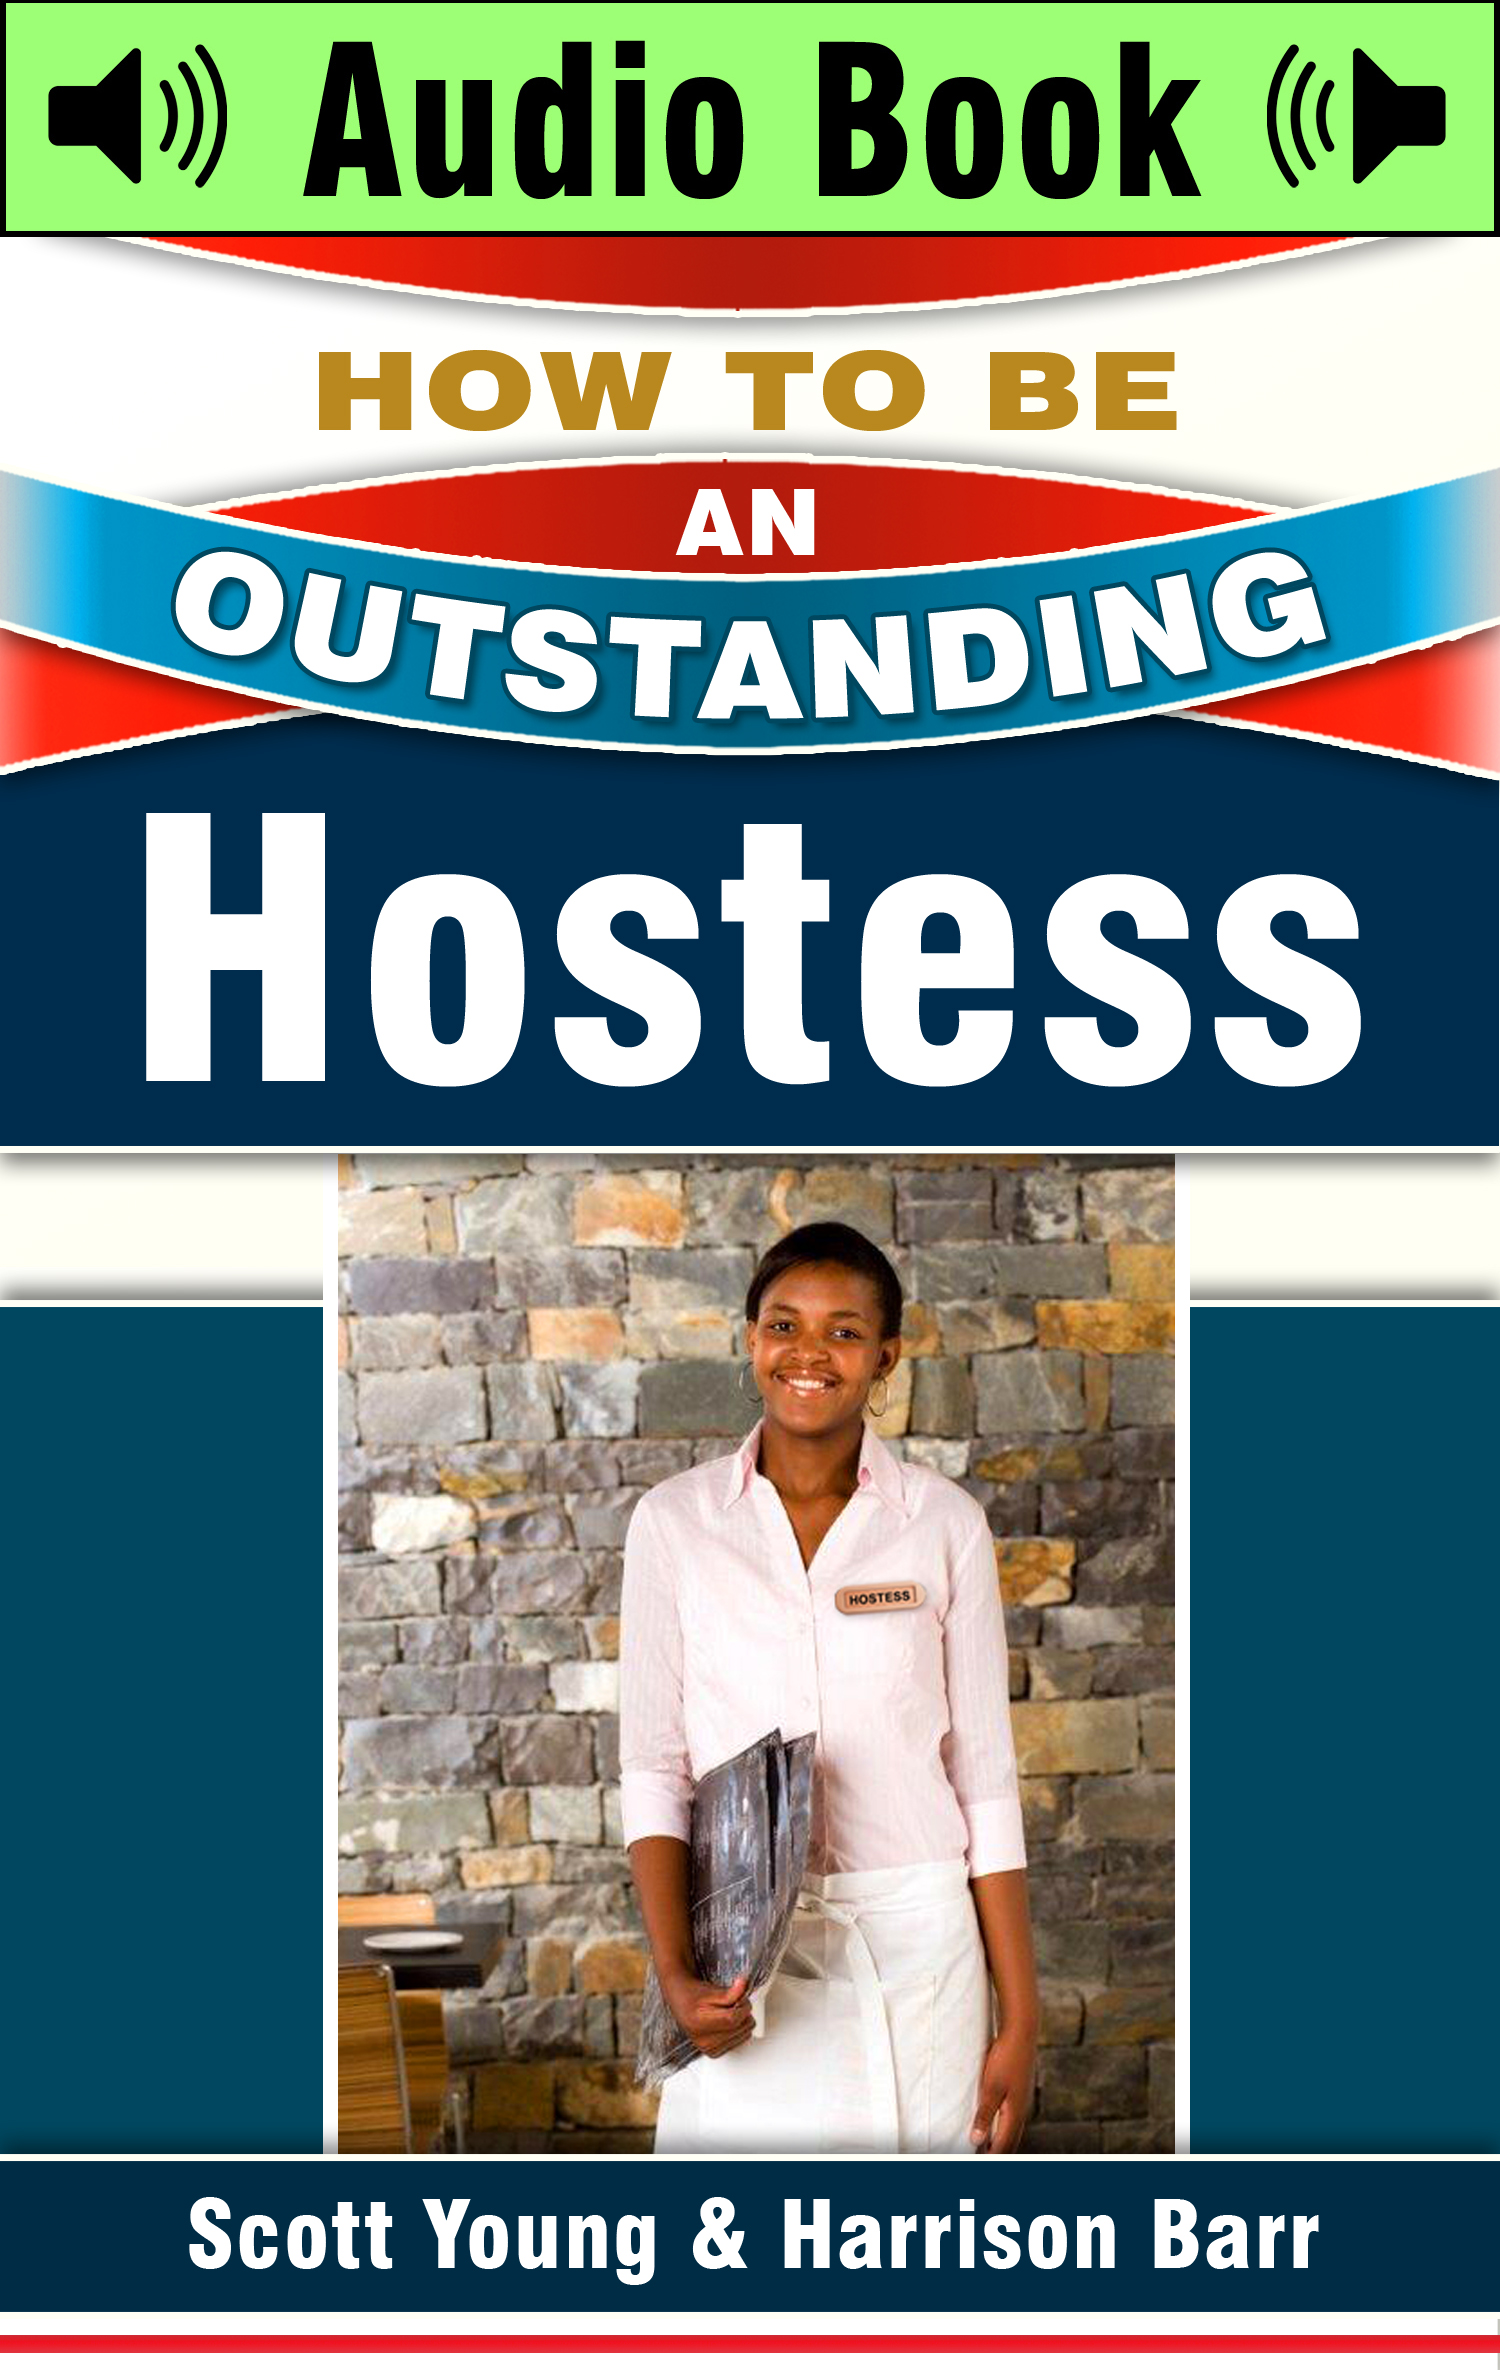 Audio book How To Be An Outstanding Hostess: Audio Book Authors Scott Young & Harrison Barr